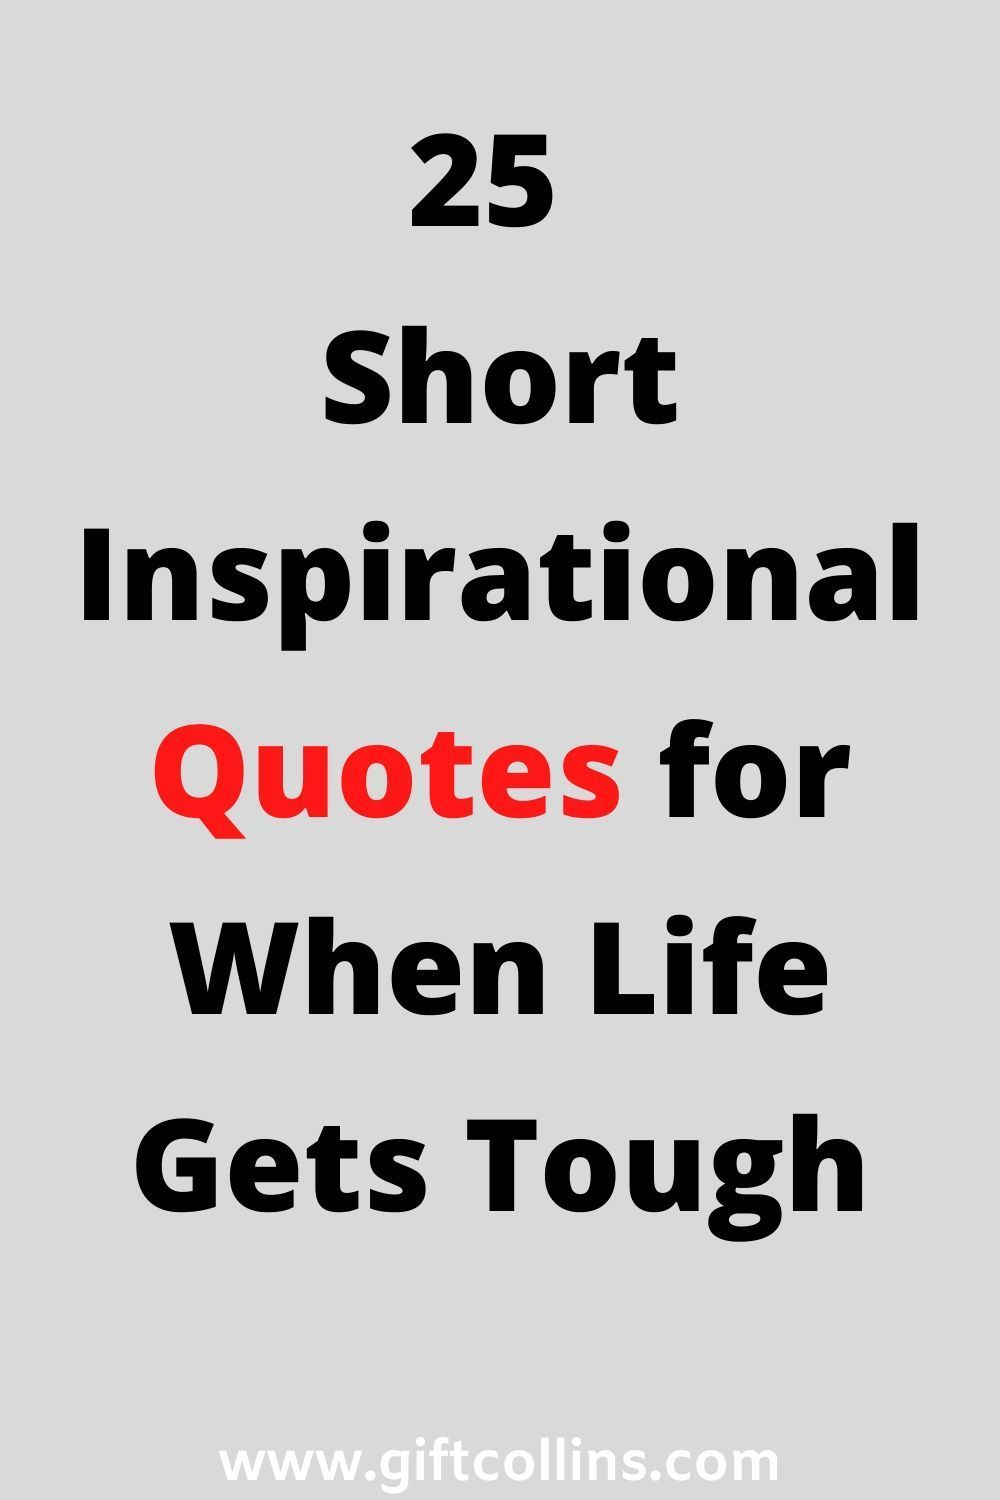 25 Short Inspirational Quotes For When Life Gets Tough Gift Collins Short Inspirational Quotes Inspirational Quotes Inspiring Quotes About Life